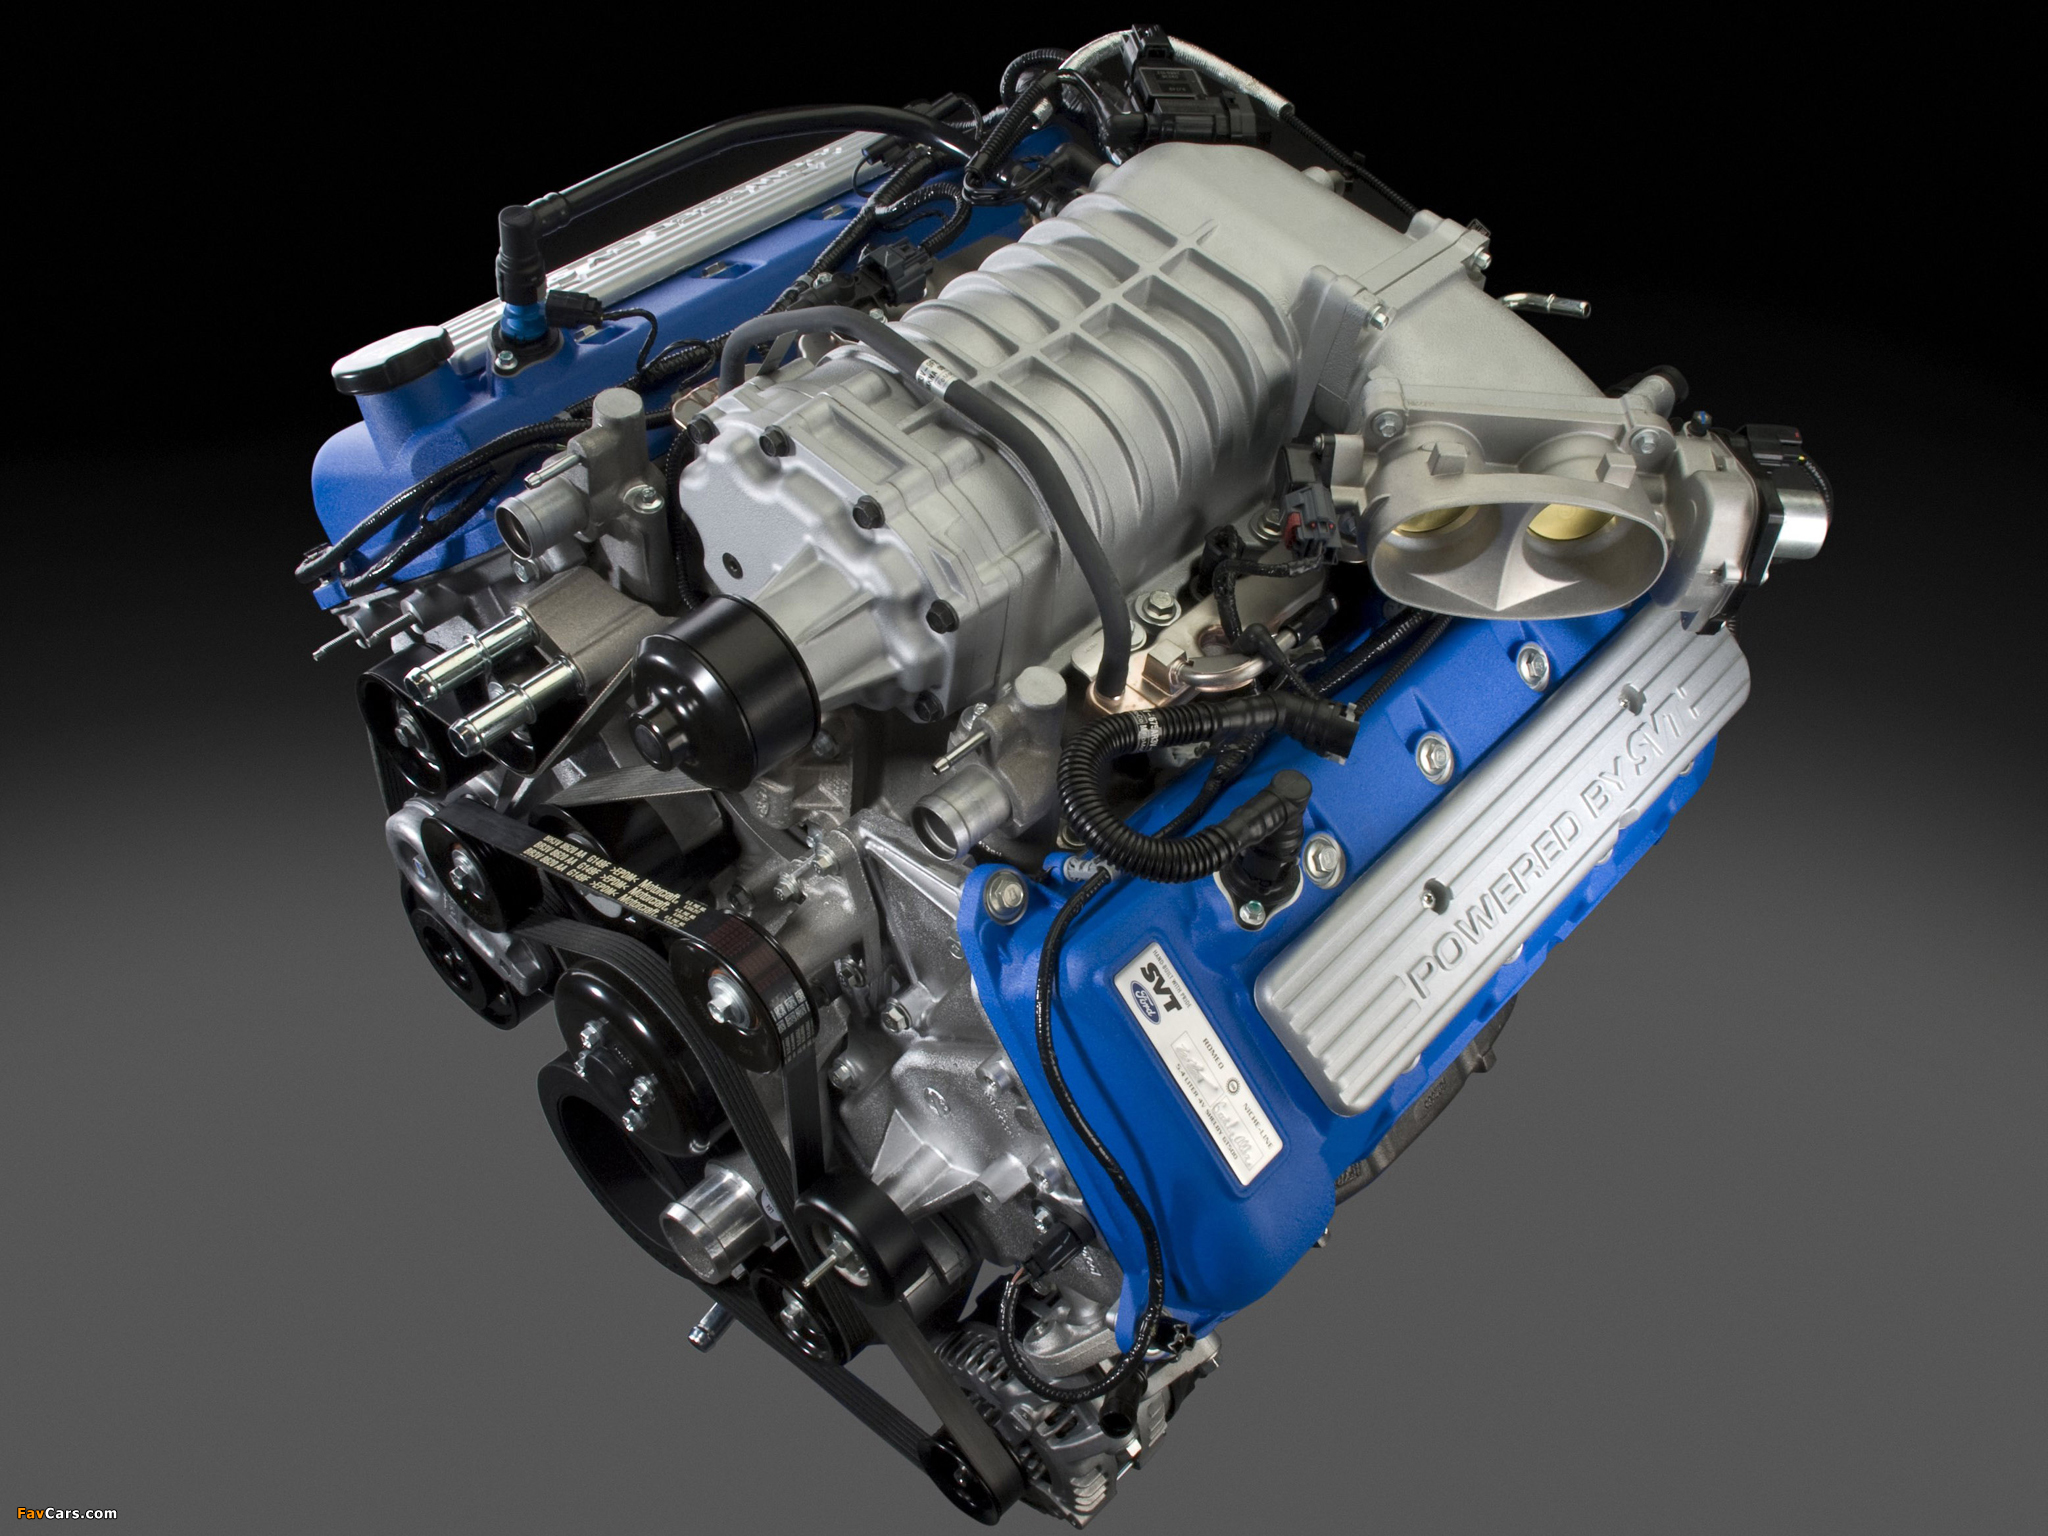 Photos of Engines  Shelby 5.4 V8 (2048 x 1536)